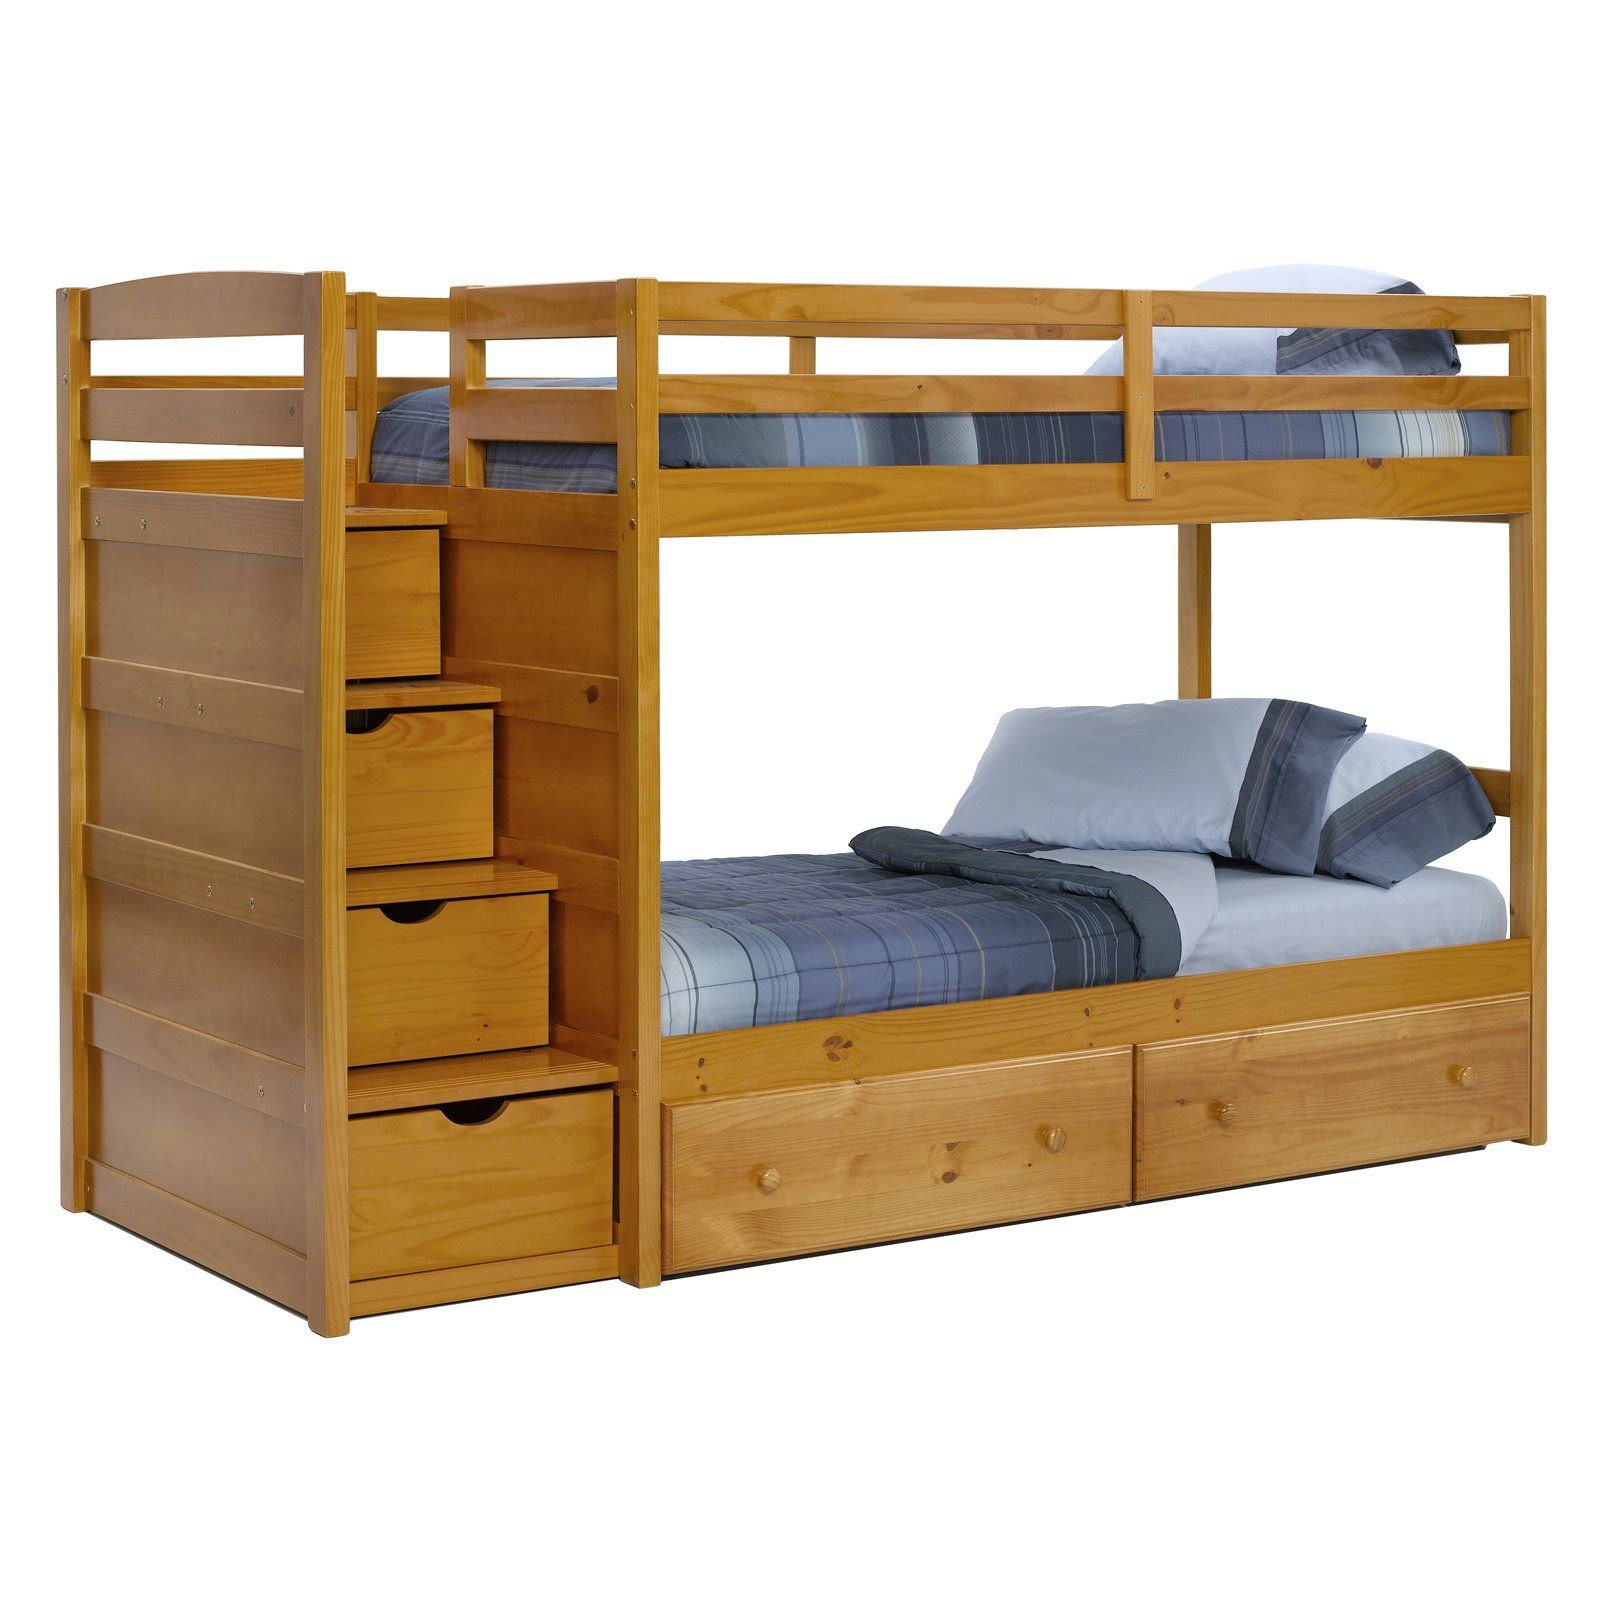 Best This Is The Type Of Bunk With Stairs I Would Like To Buy 400 x 300